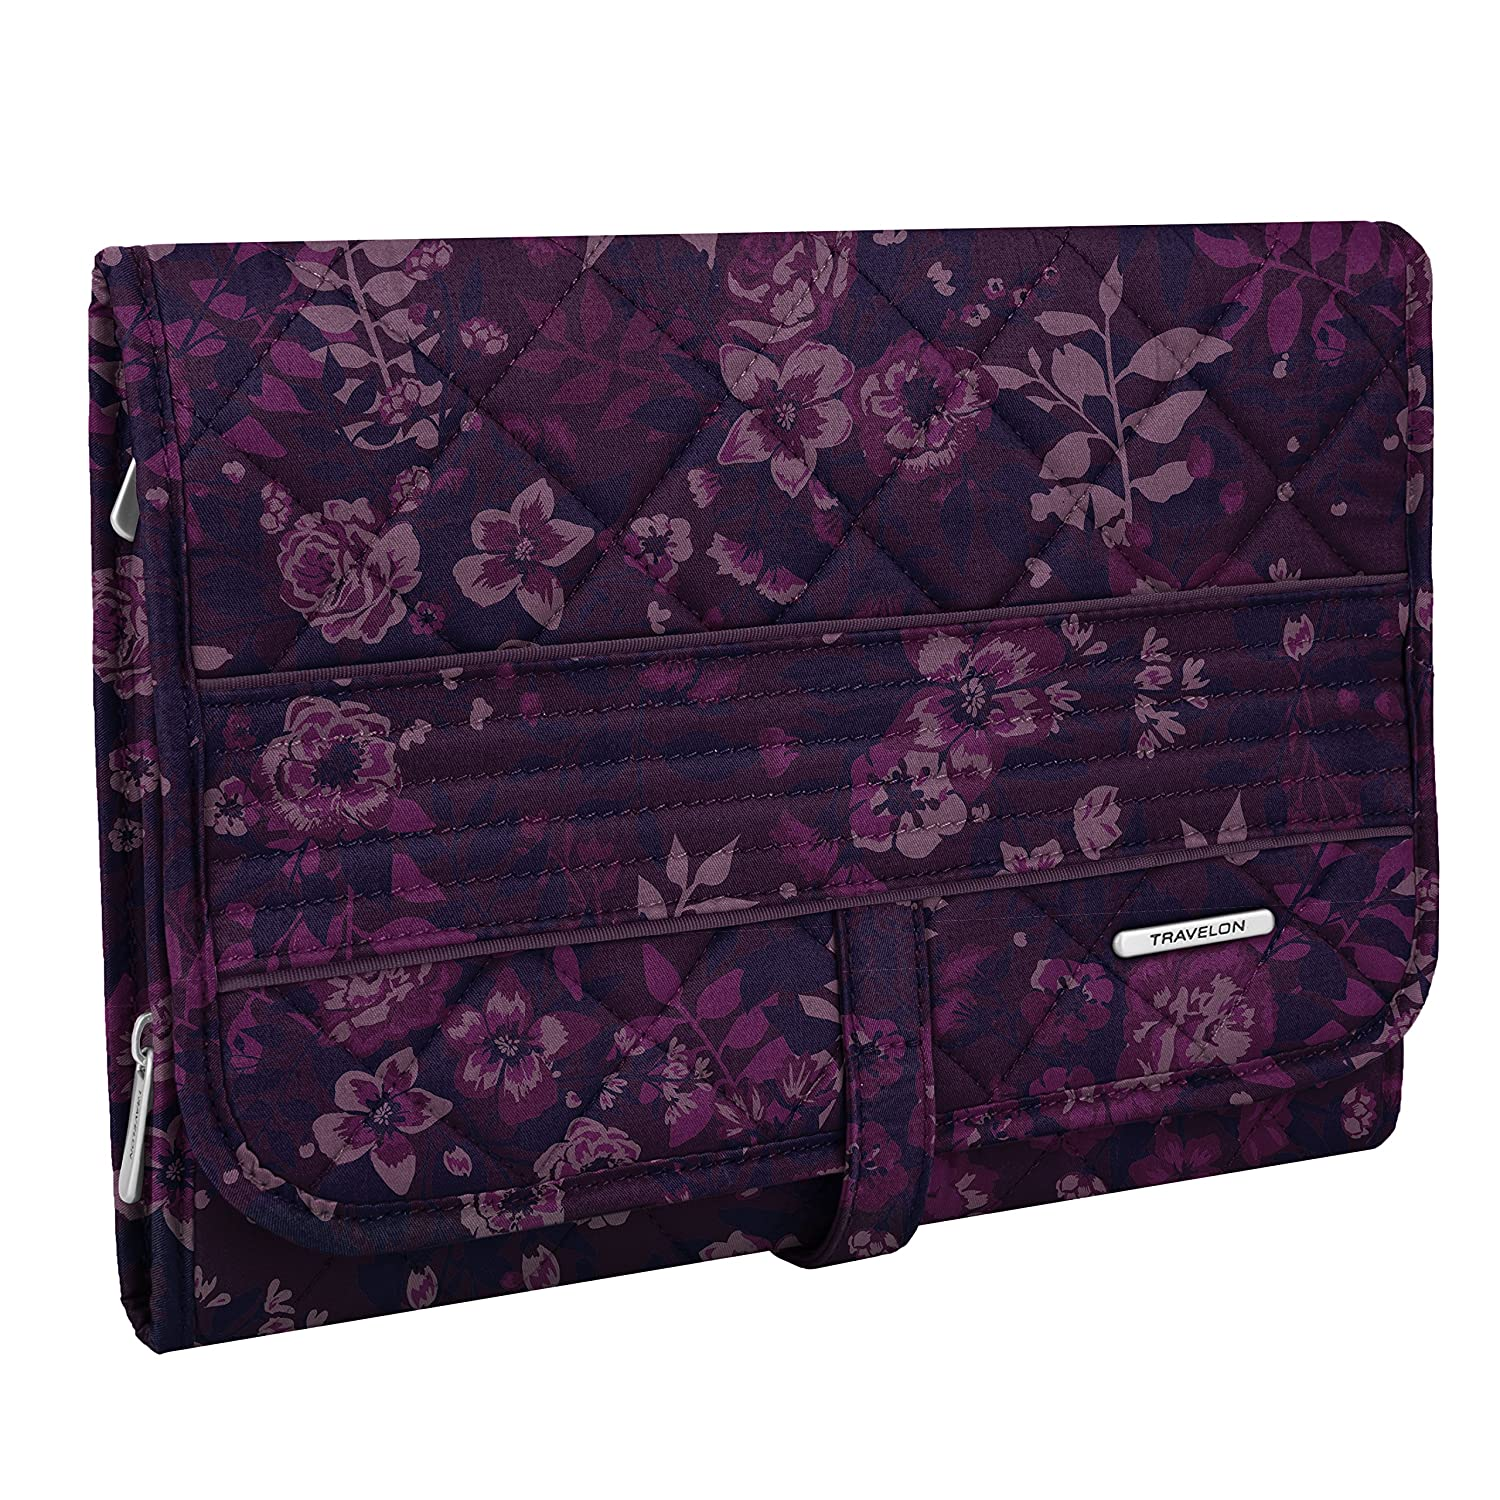 Travelon 33213 32X Boho Trifold Hanging Toiletry Kit, Summer Paisley, One Size TRBO3